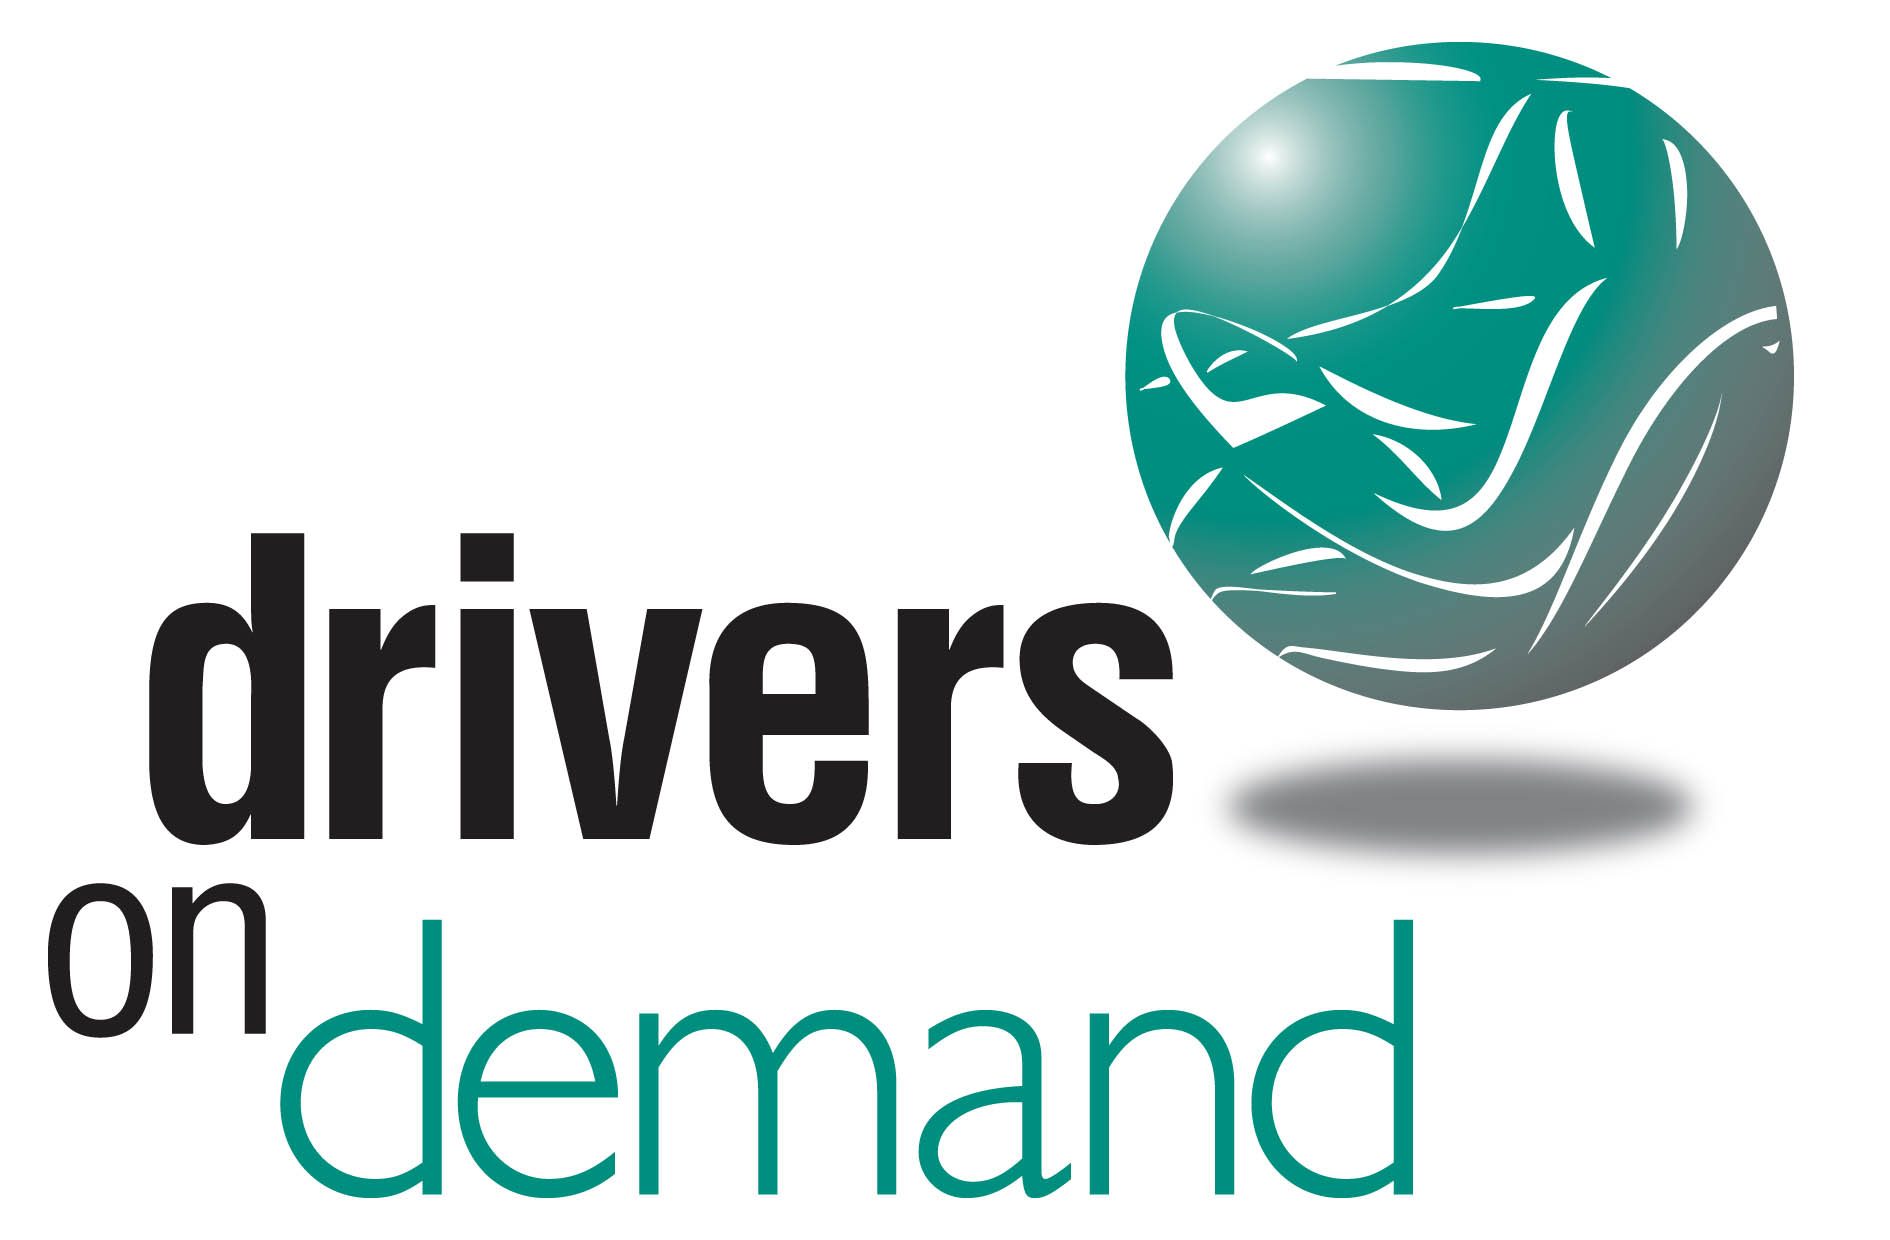 Drivers on Demand - 020 8453 3444